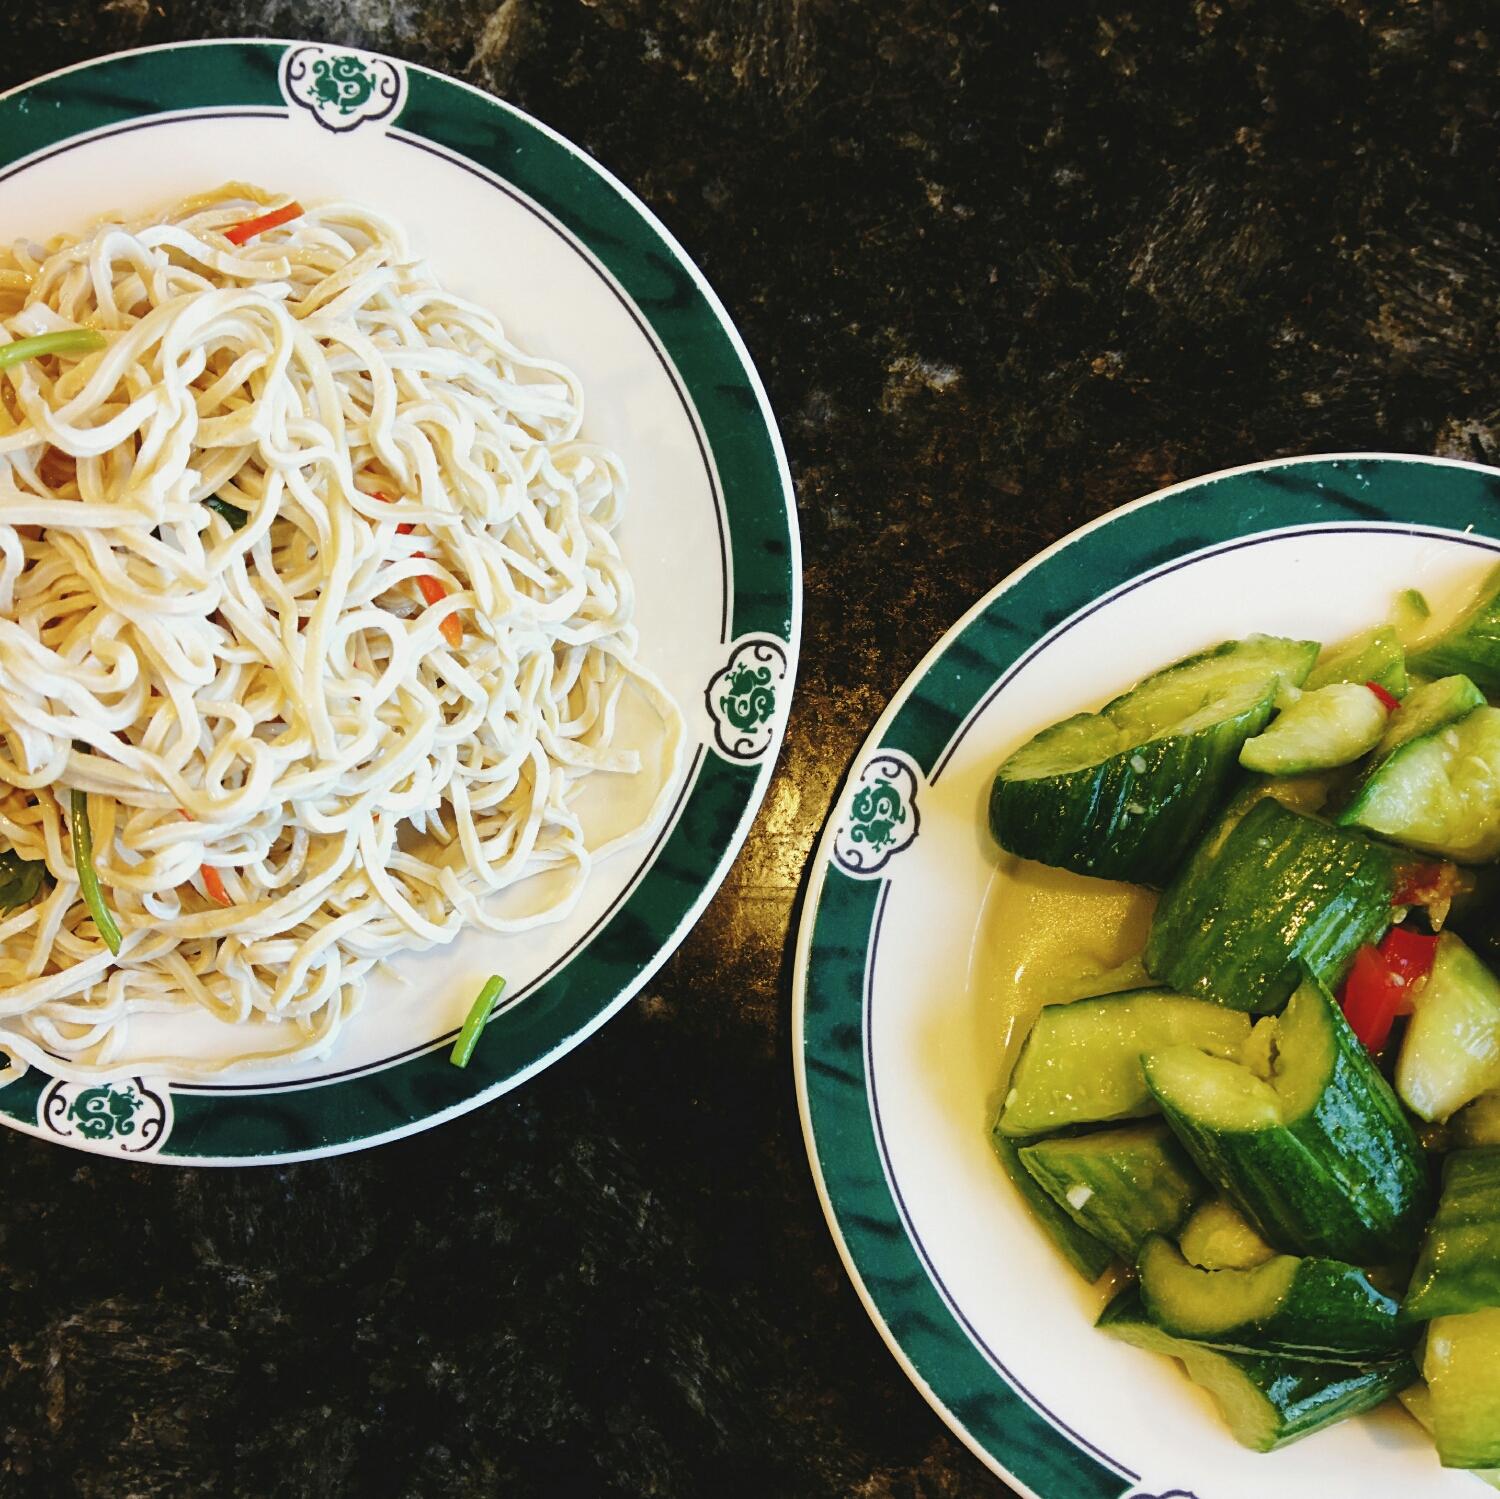 tofu noodles and cucumbers, my favorite cold appetizers.